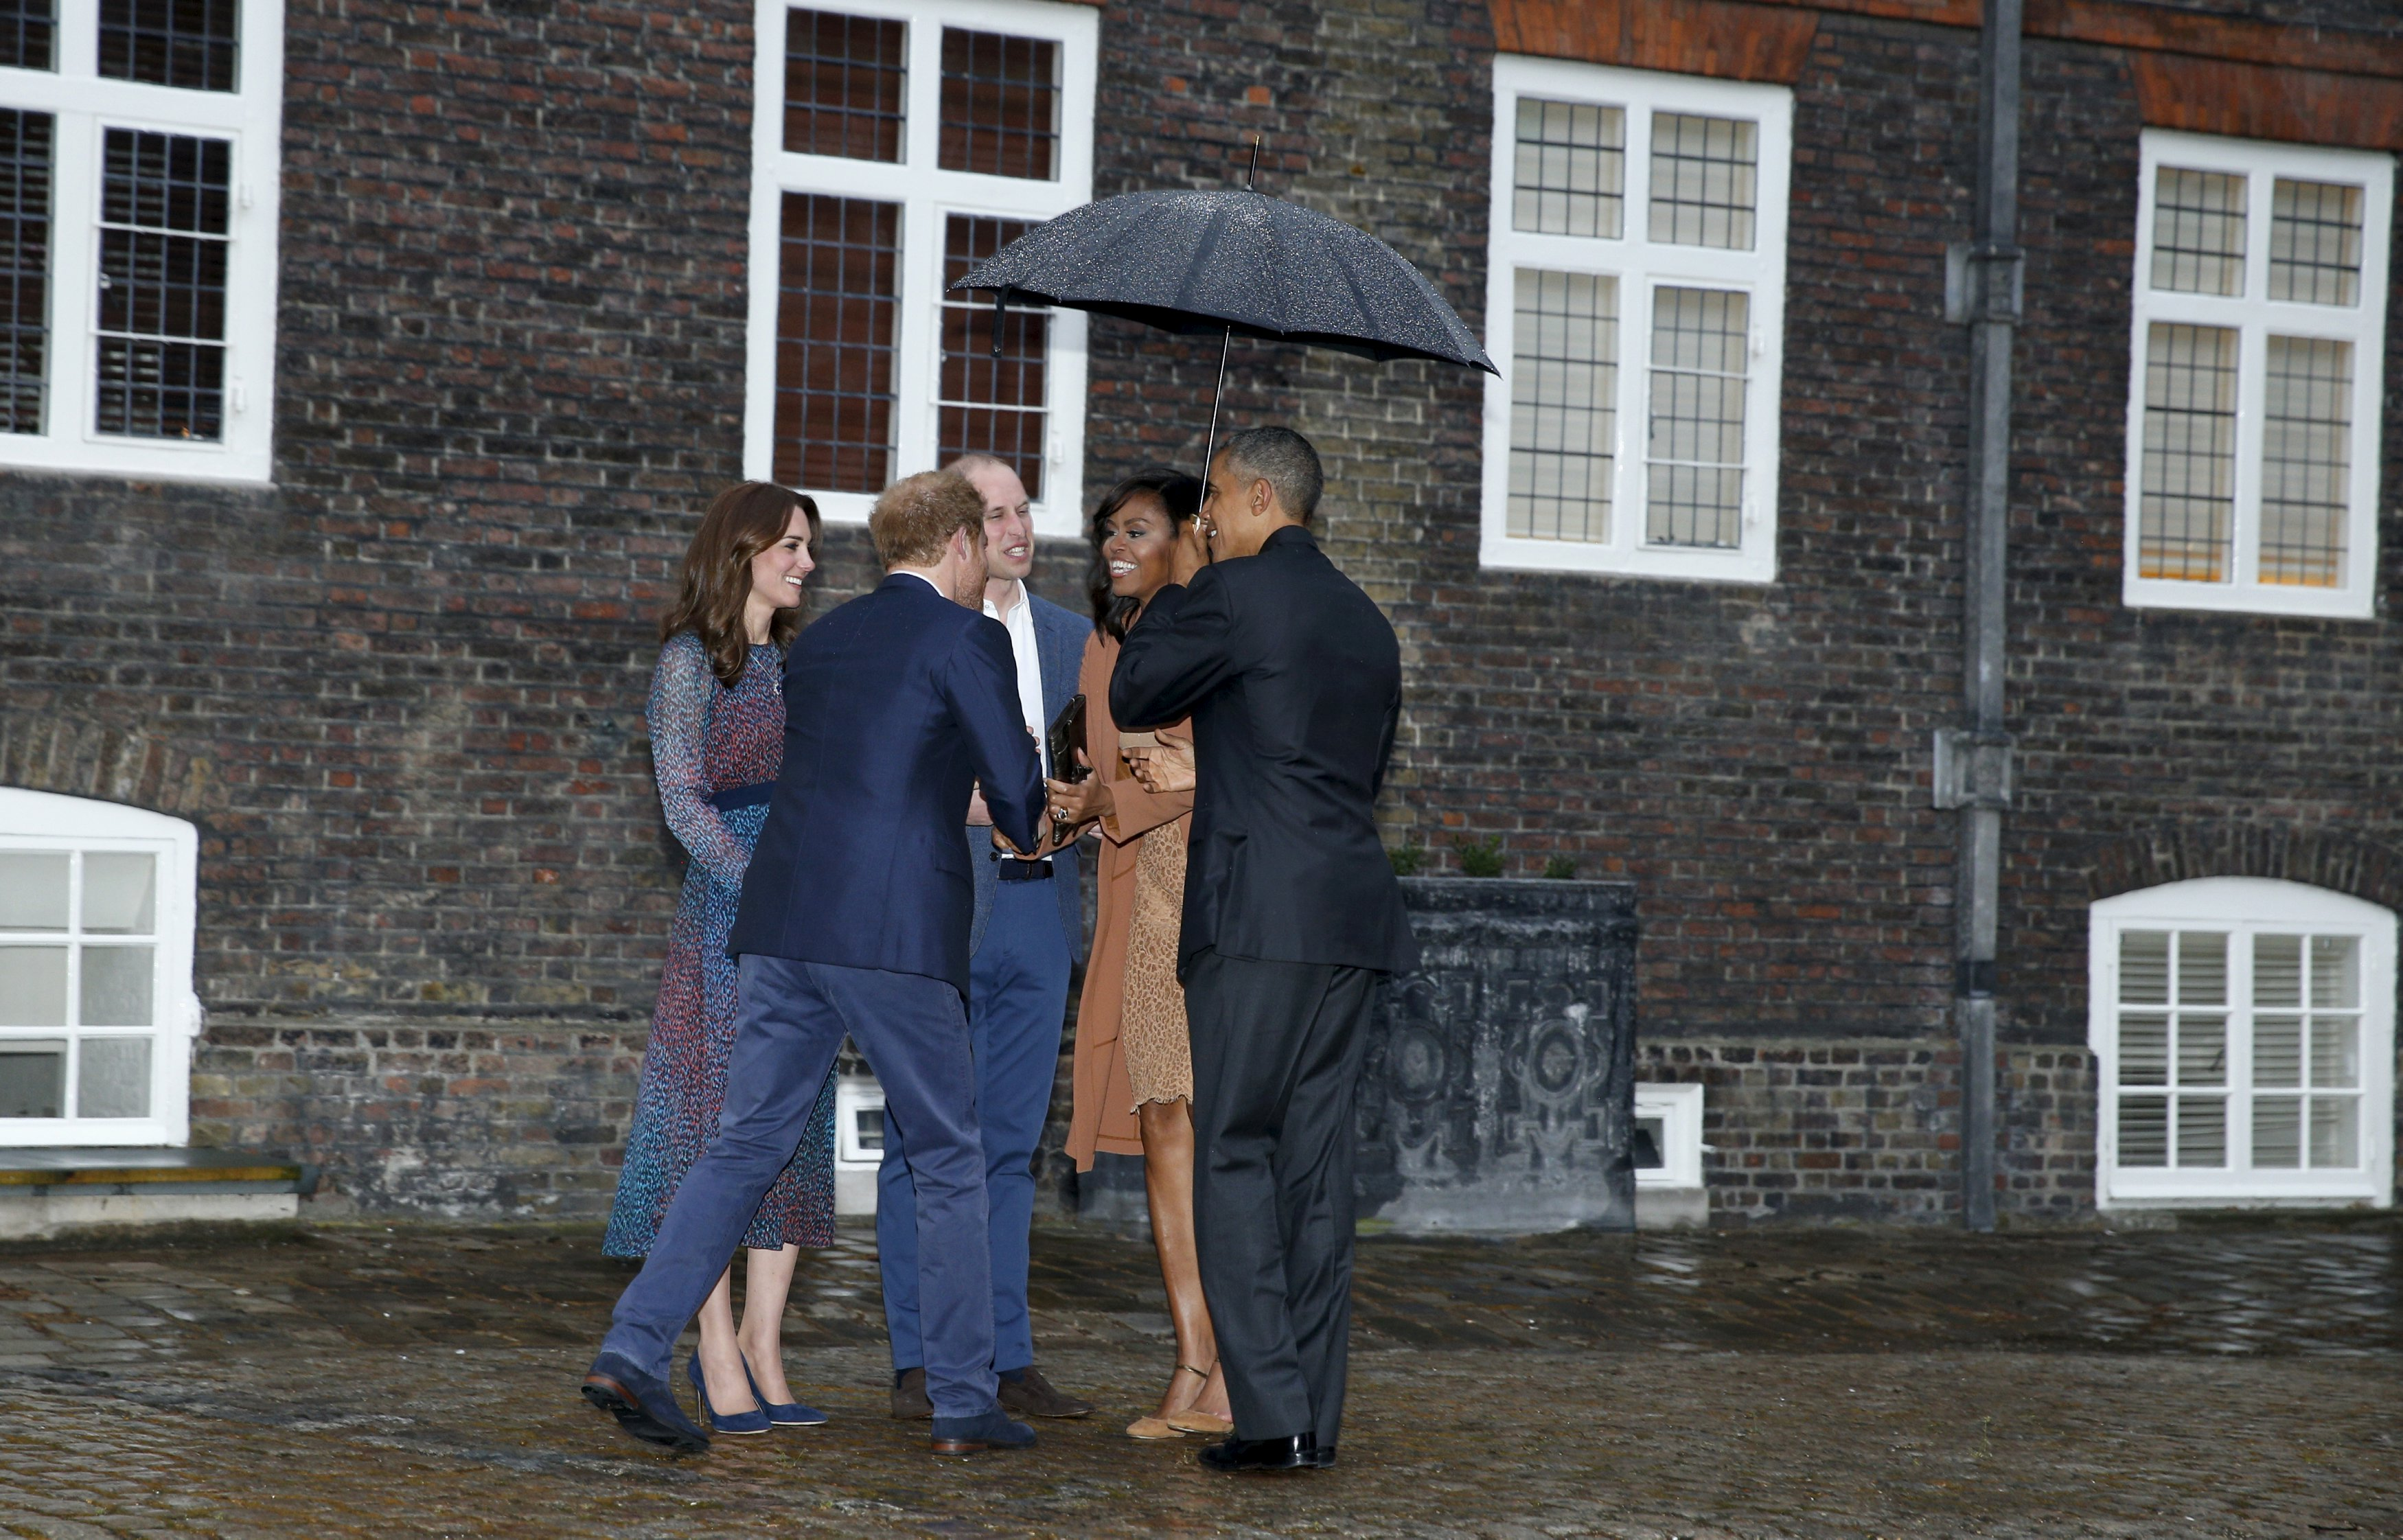 Obama meets with the Royal Family in London visit